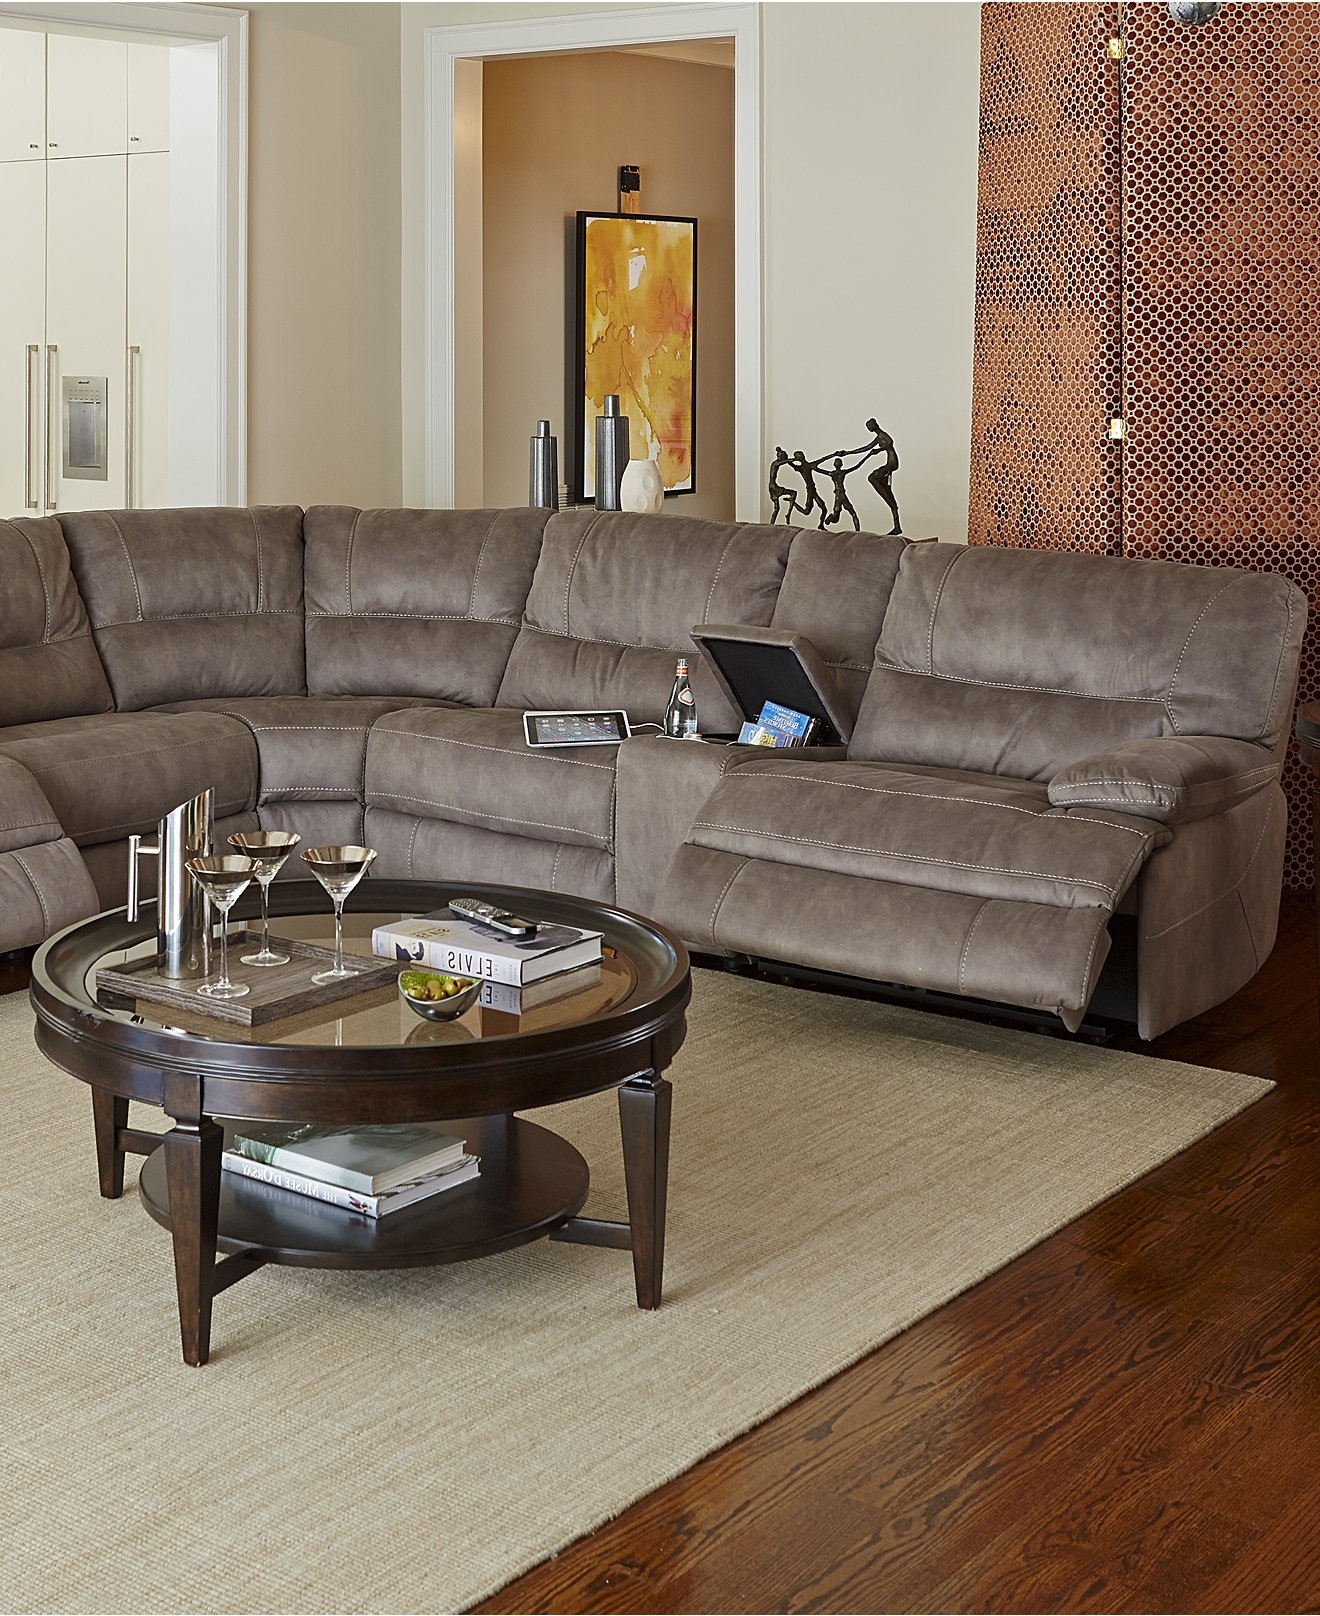 Newest Elliot Fabric Microfiber Sectional Sofa 3 Piece Microfiber Intended For Macys Leather Sectional Sofas (View 14 of 20)